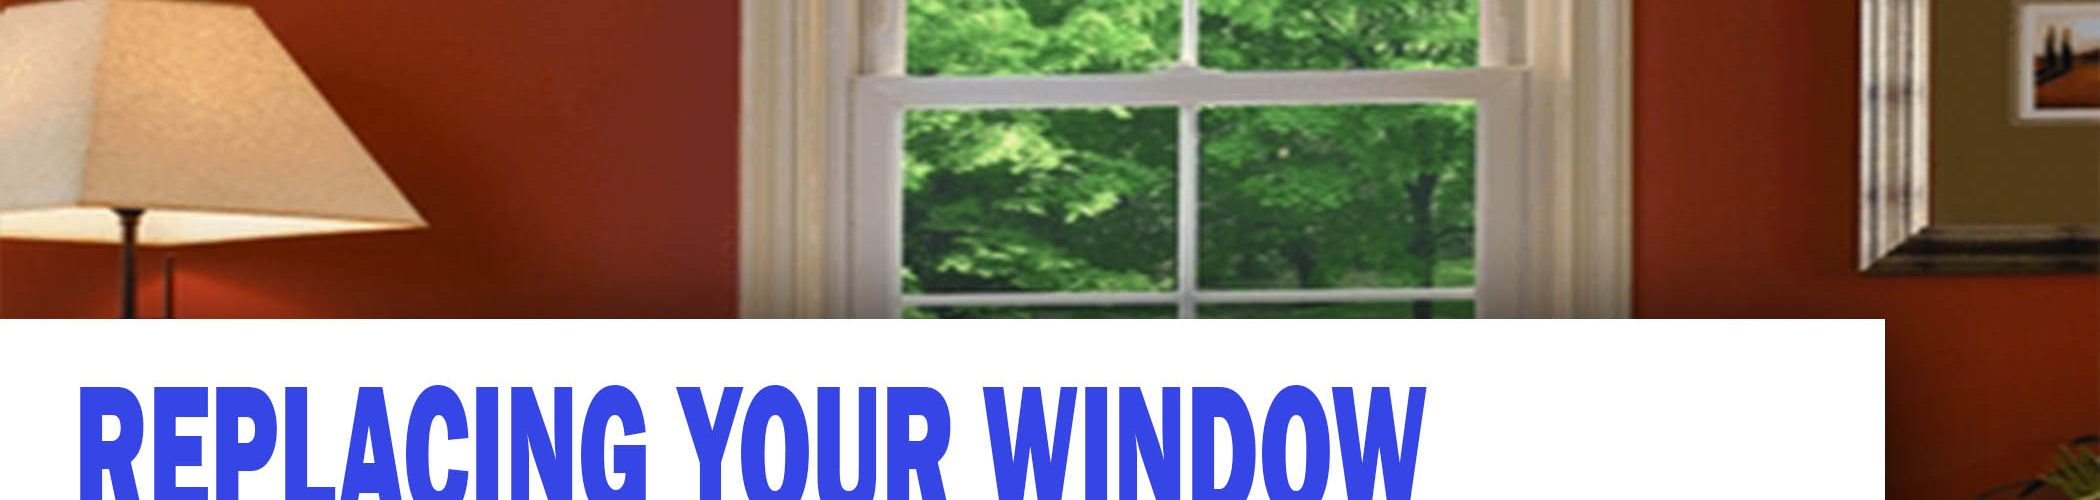 How To Replace Your Double-Hung Window Without The Help Of Anyone (Diy)